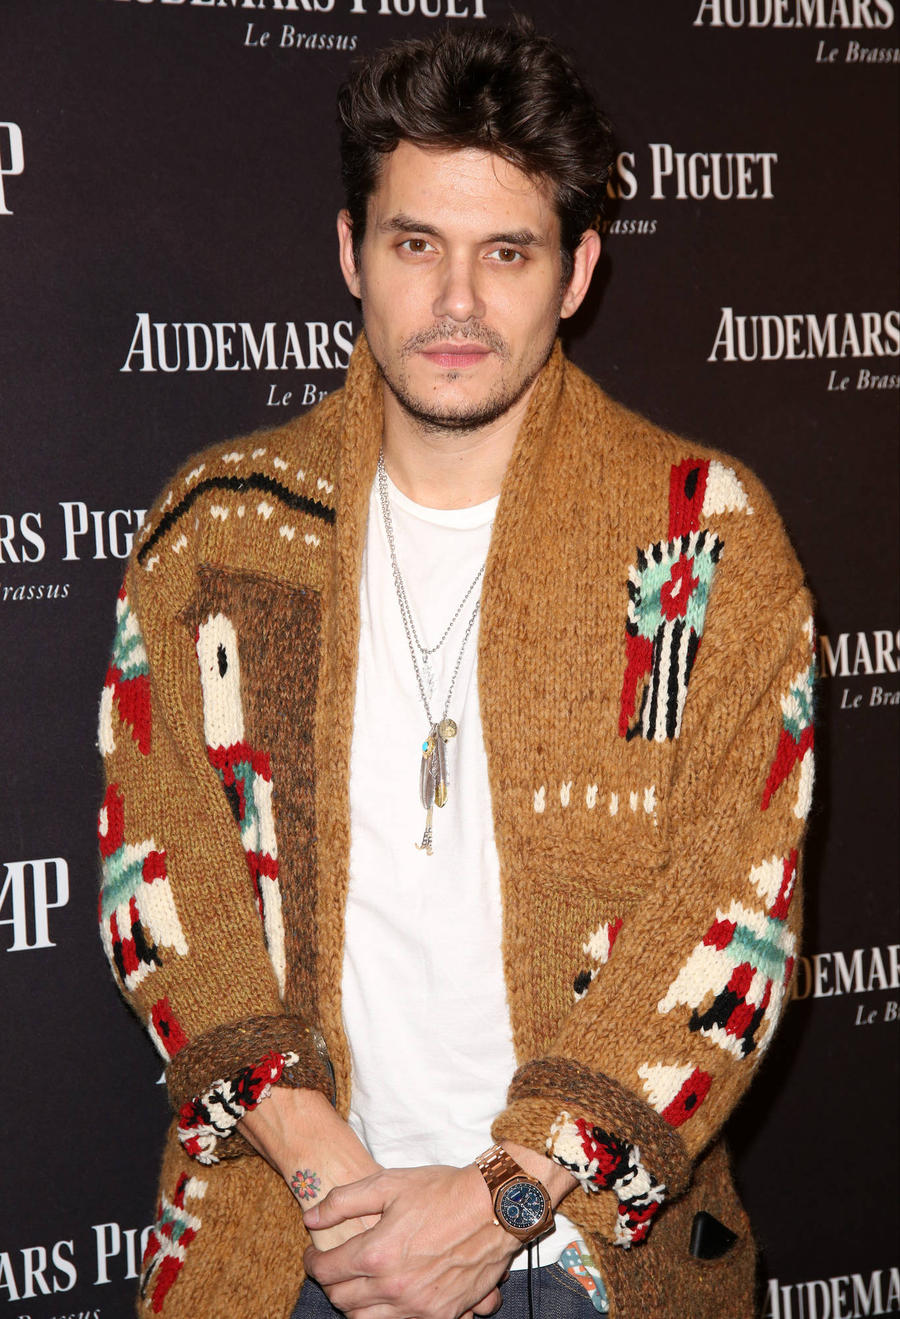 John Mayer Not Performing At Prince Tribute Concert